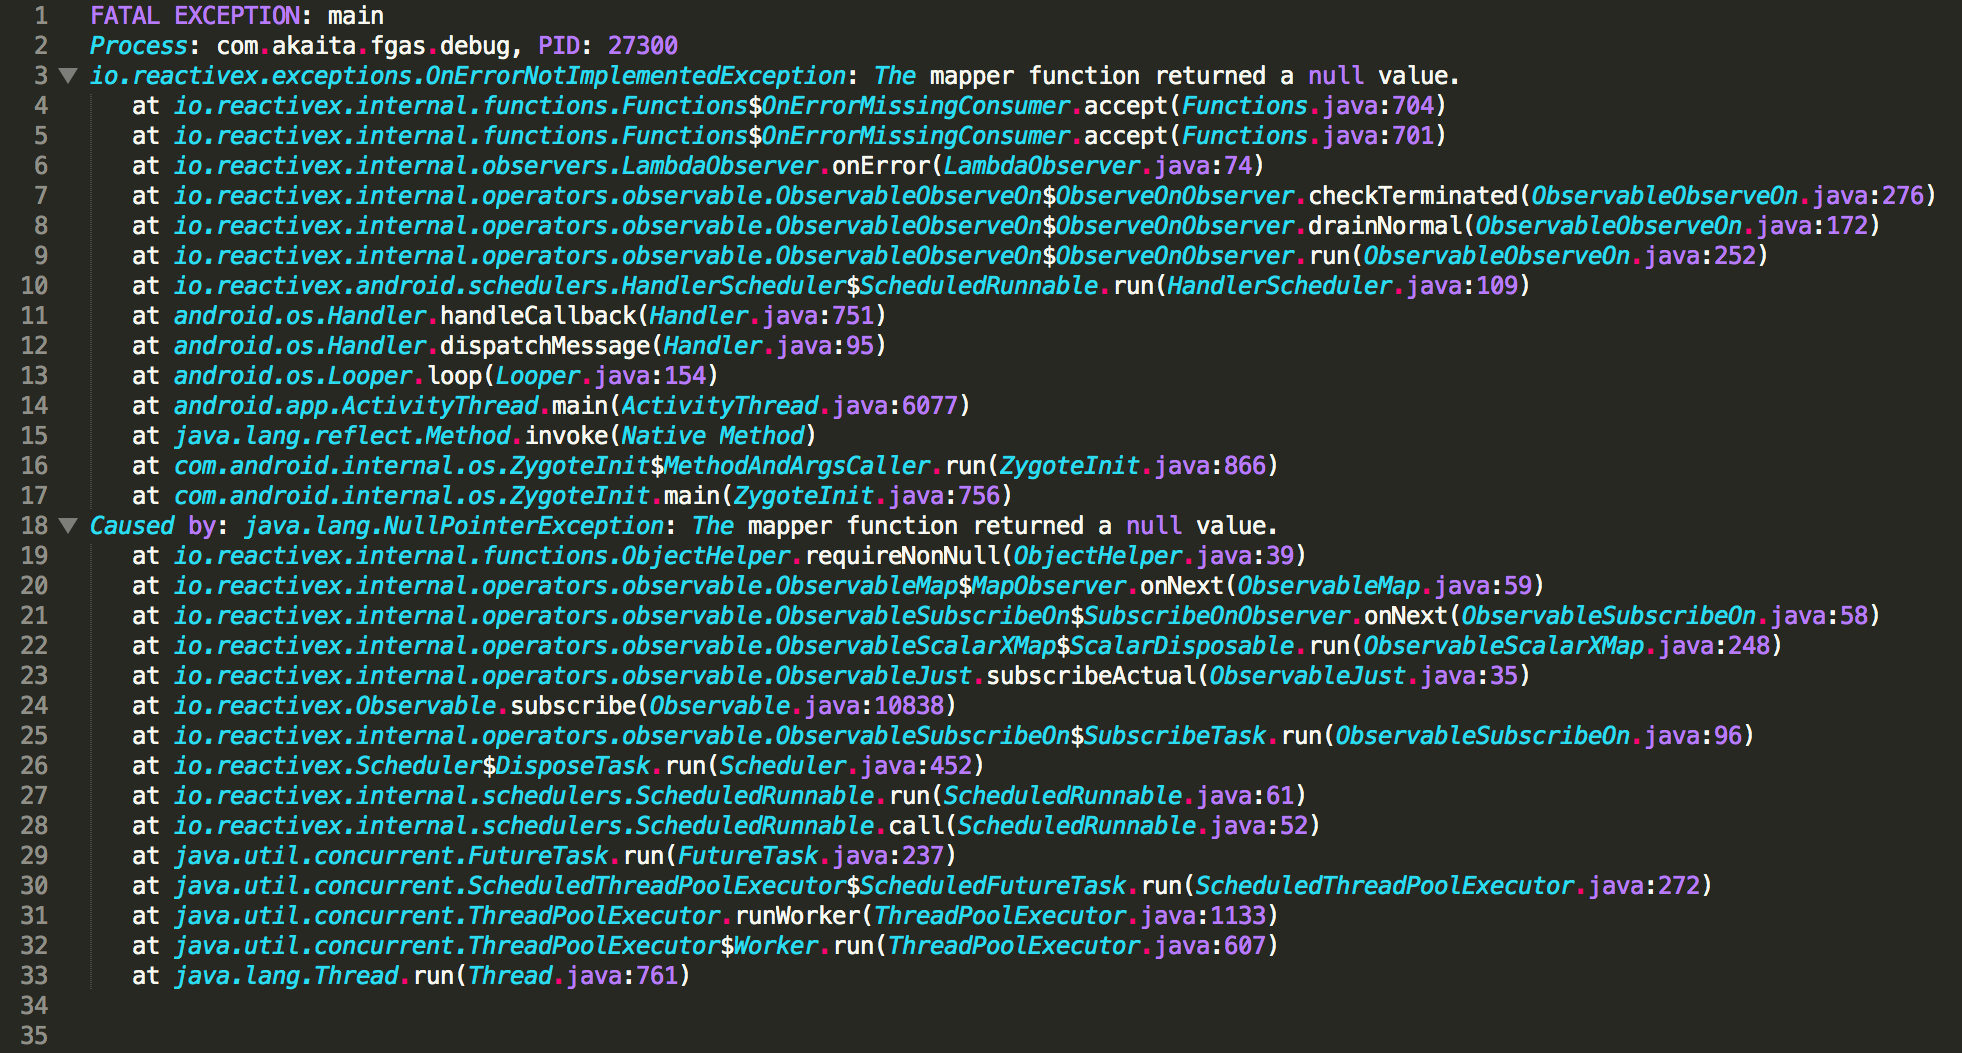 raw stack trace